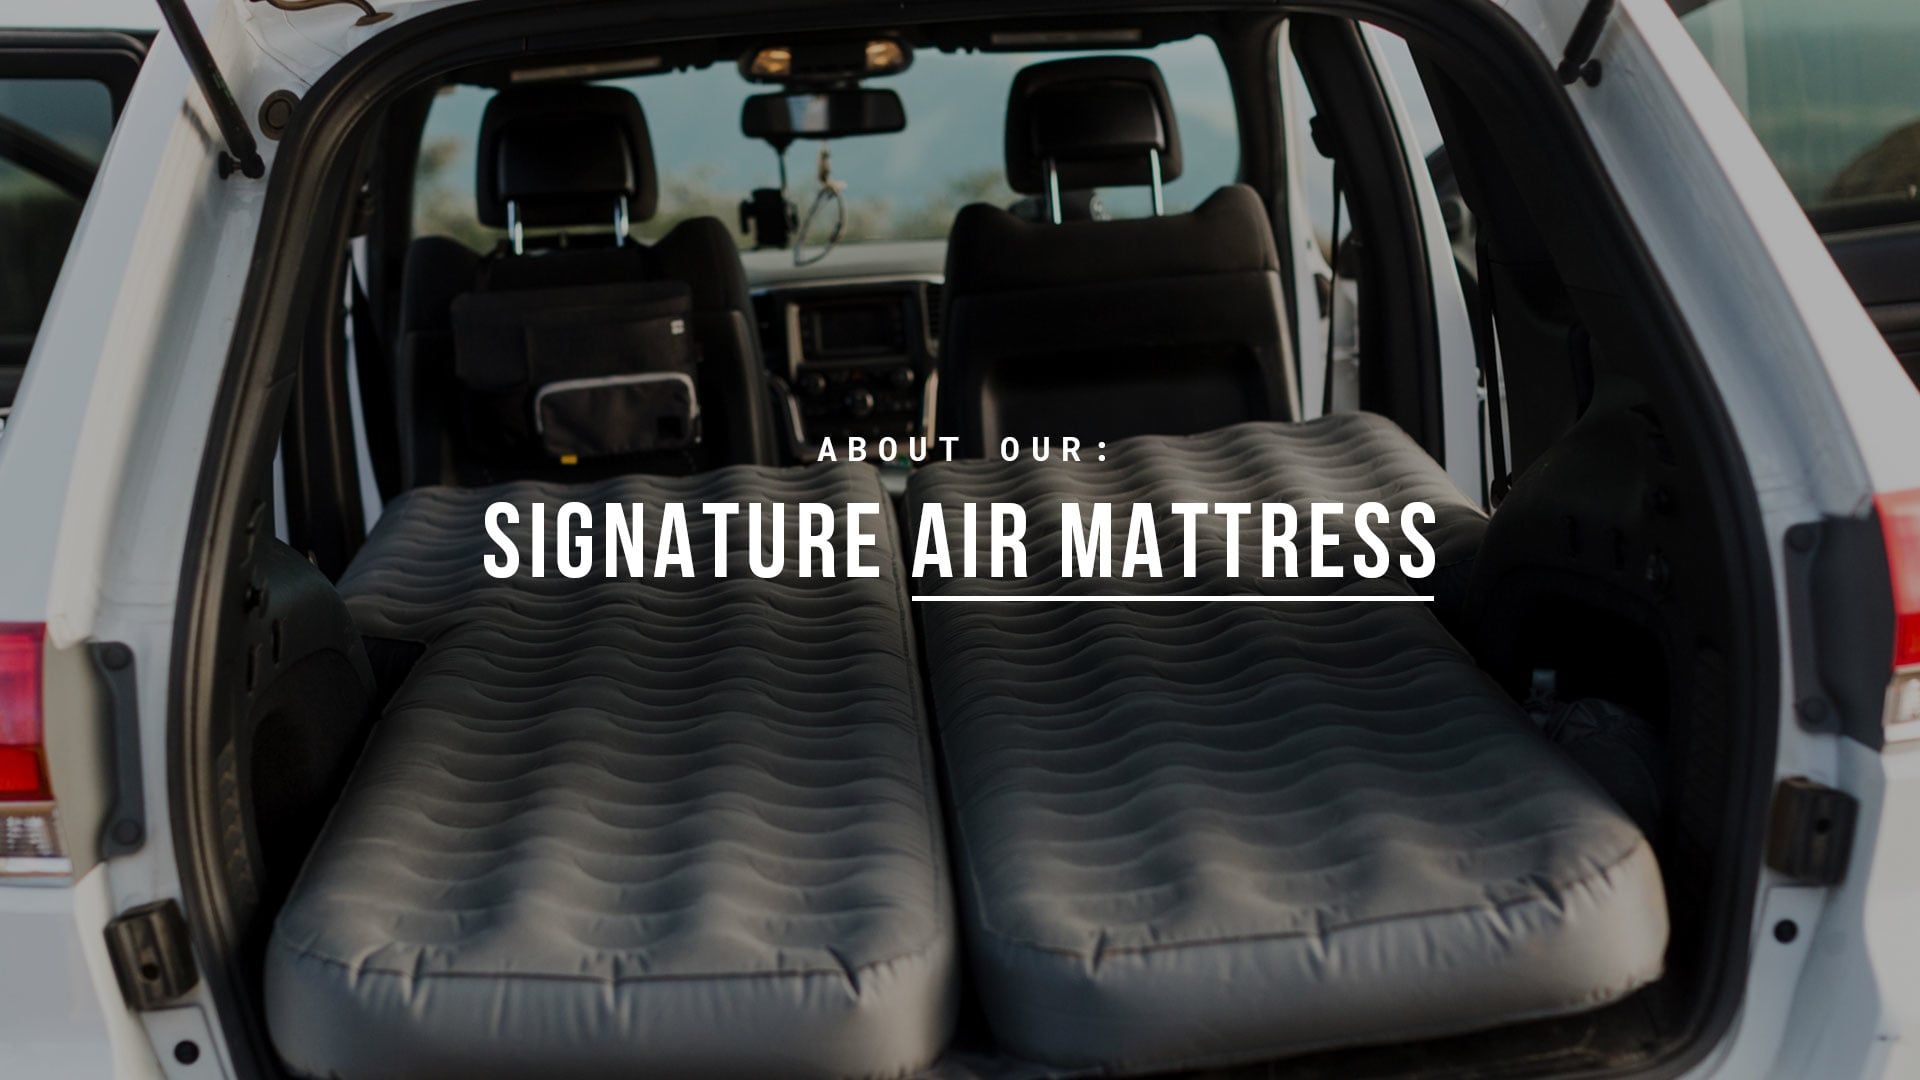 About Our Luno Life Signature Air Mattress Air Mattress Camping Mattress Air Mattress